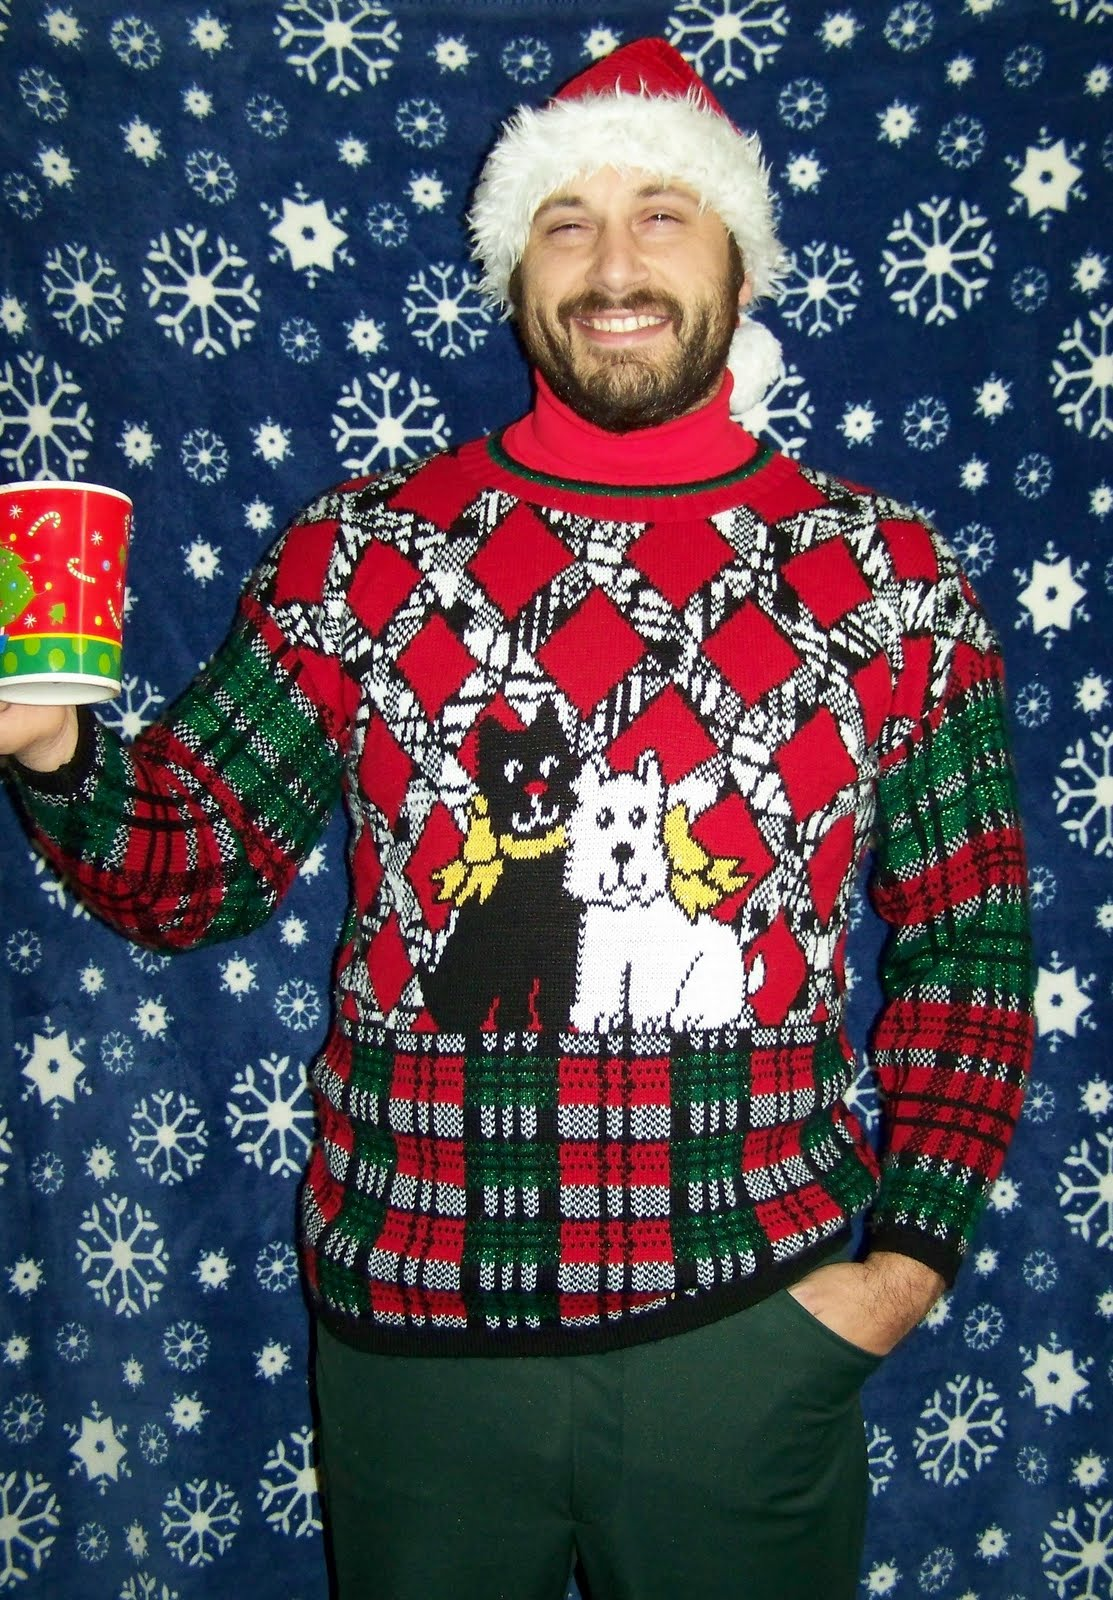 a tale of customer service are you nordstrom or nerdstrom - Nordstrom Christmas Sweaters